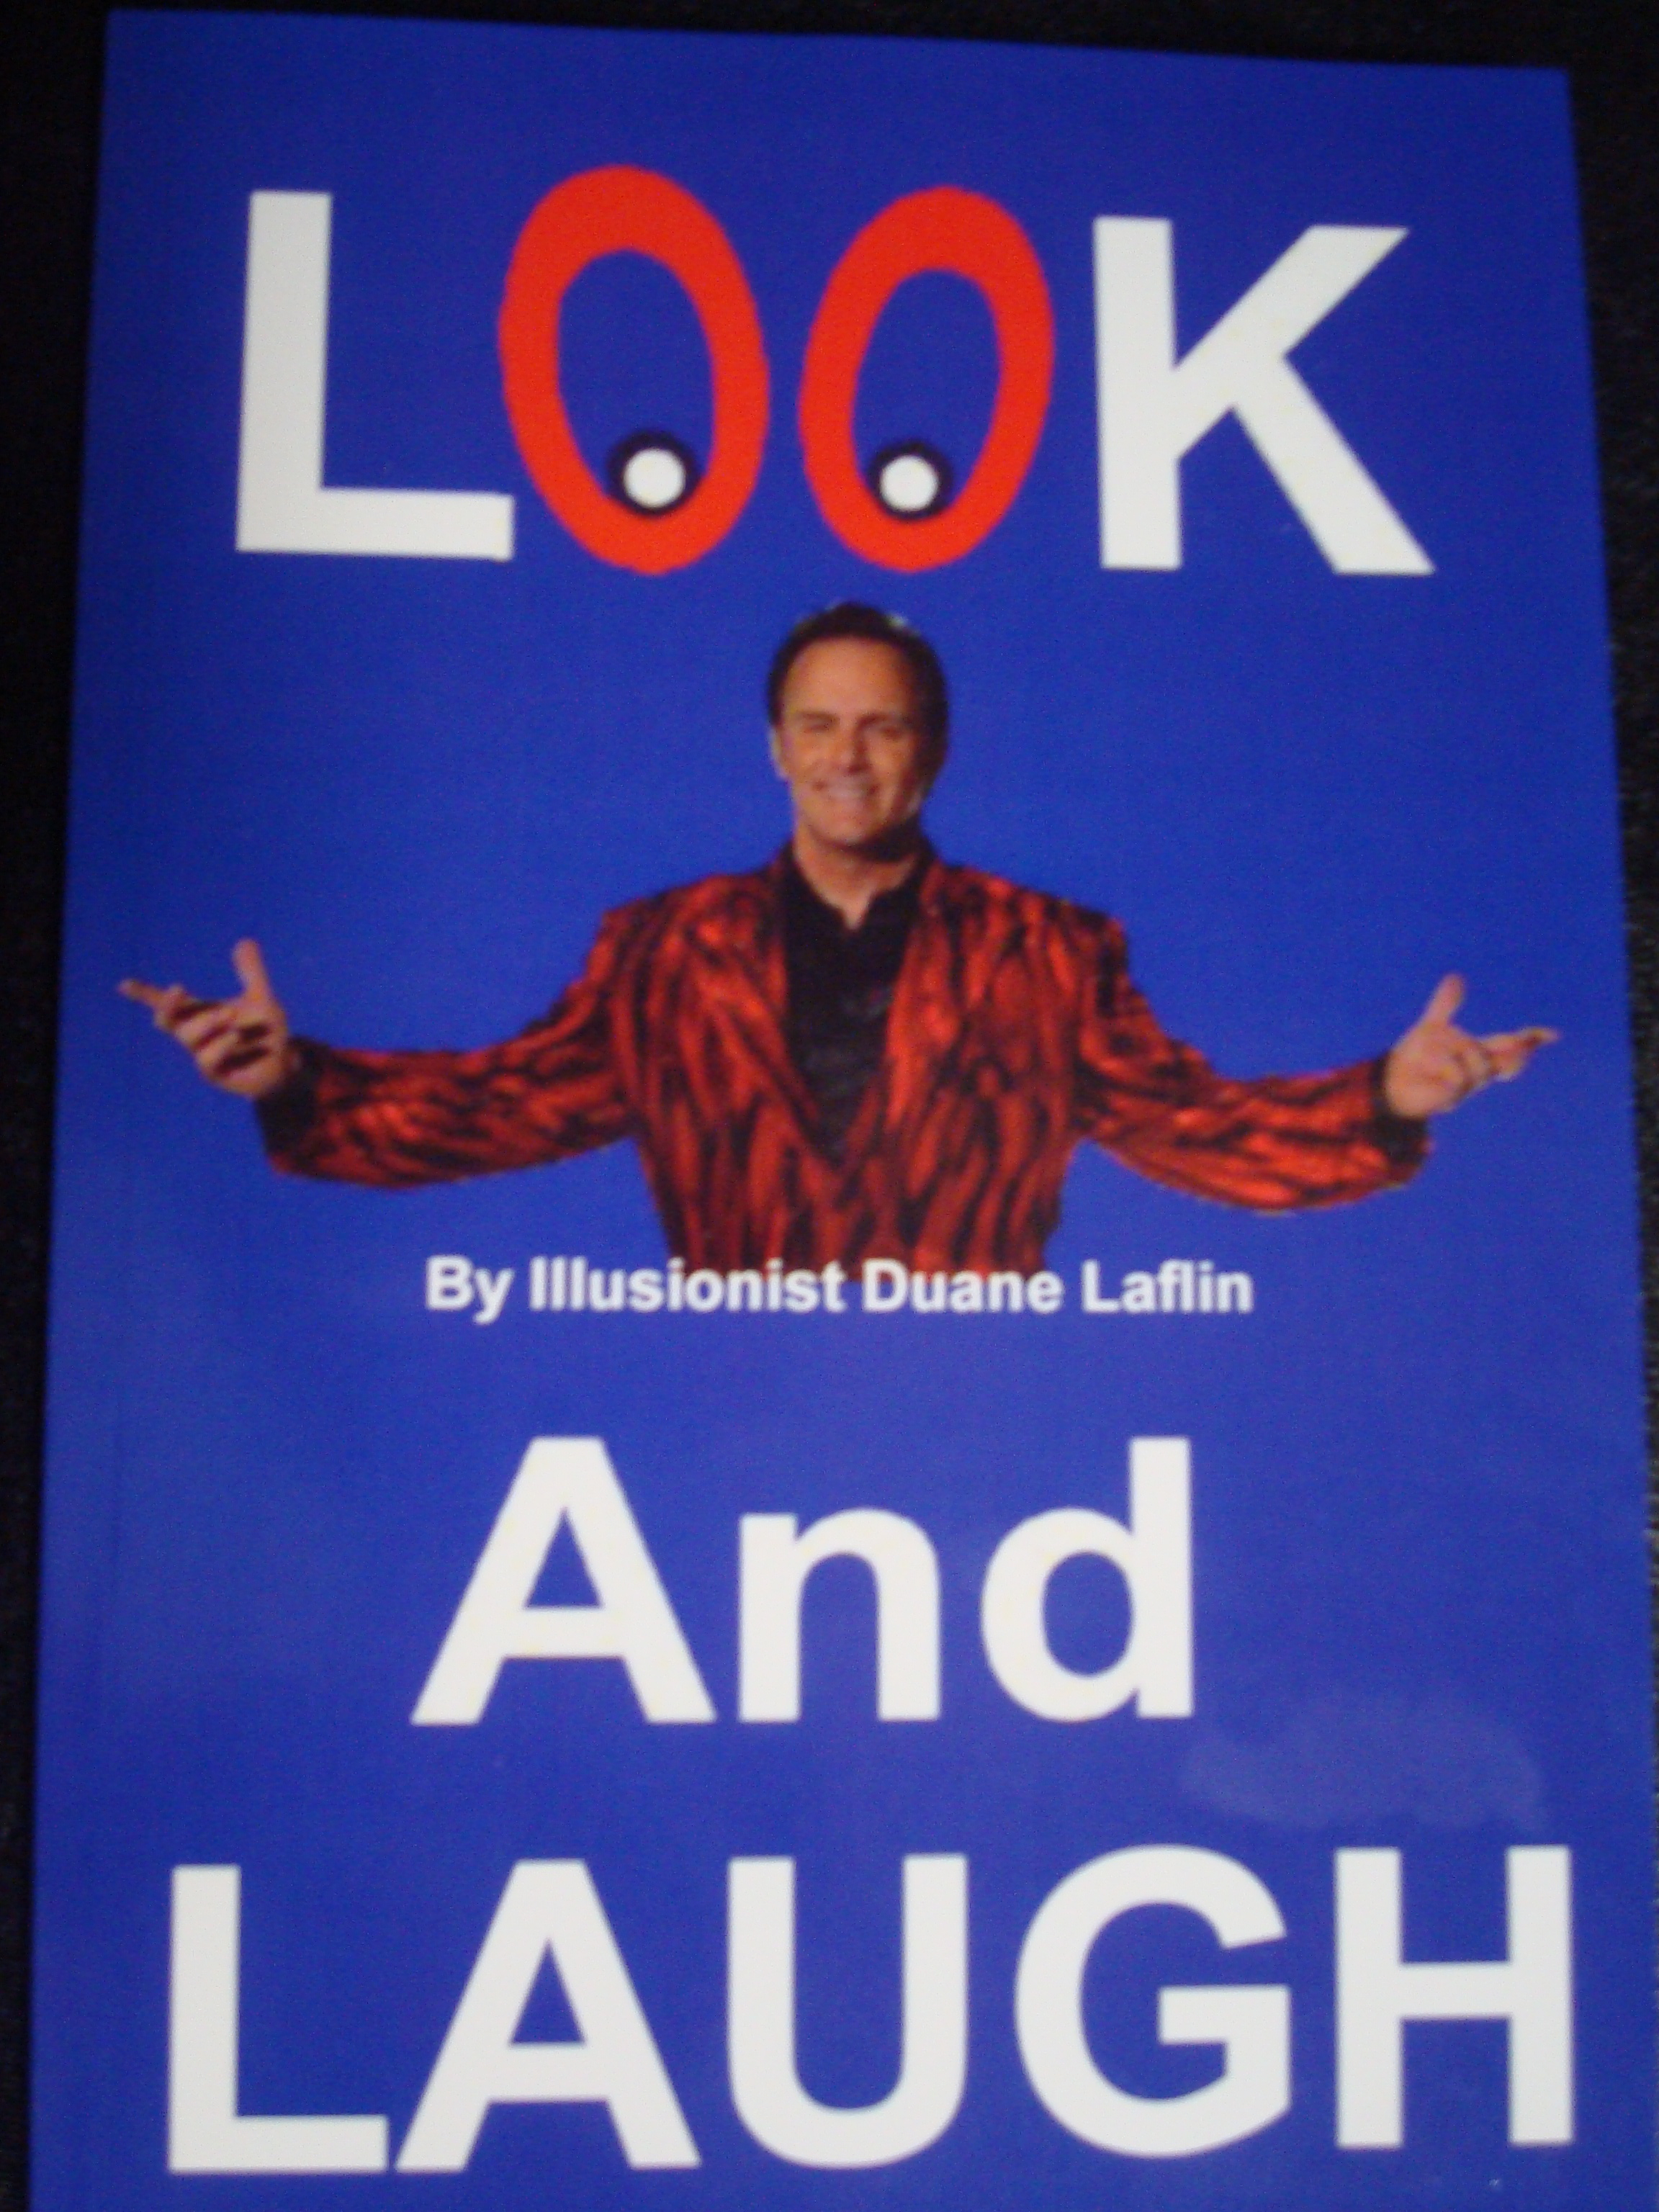 Look and Laugh by Duane Laflin